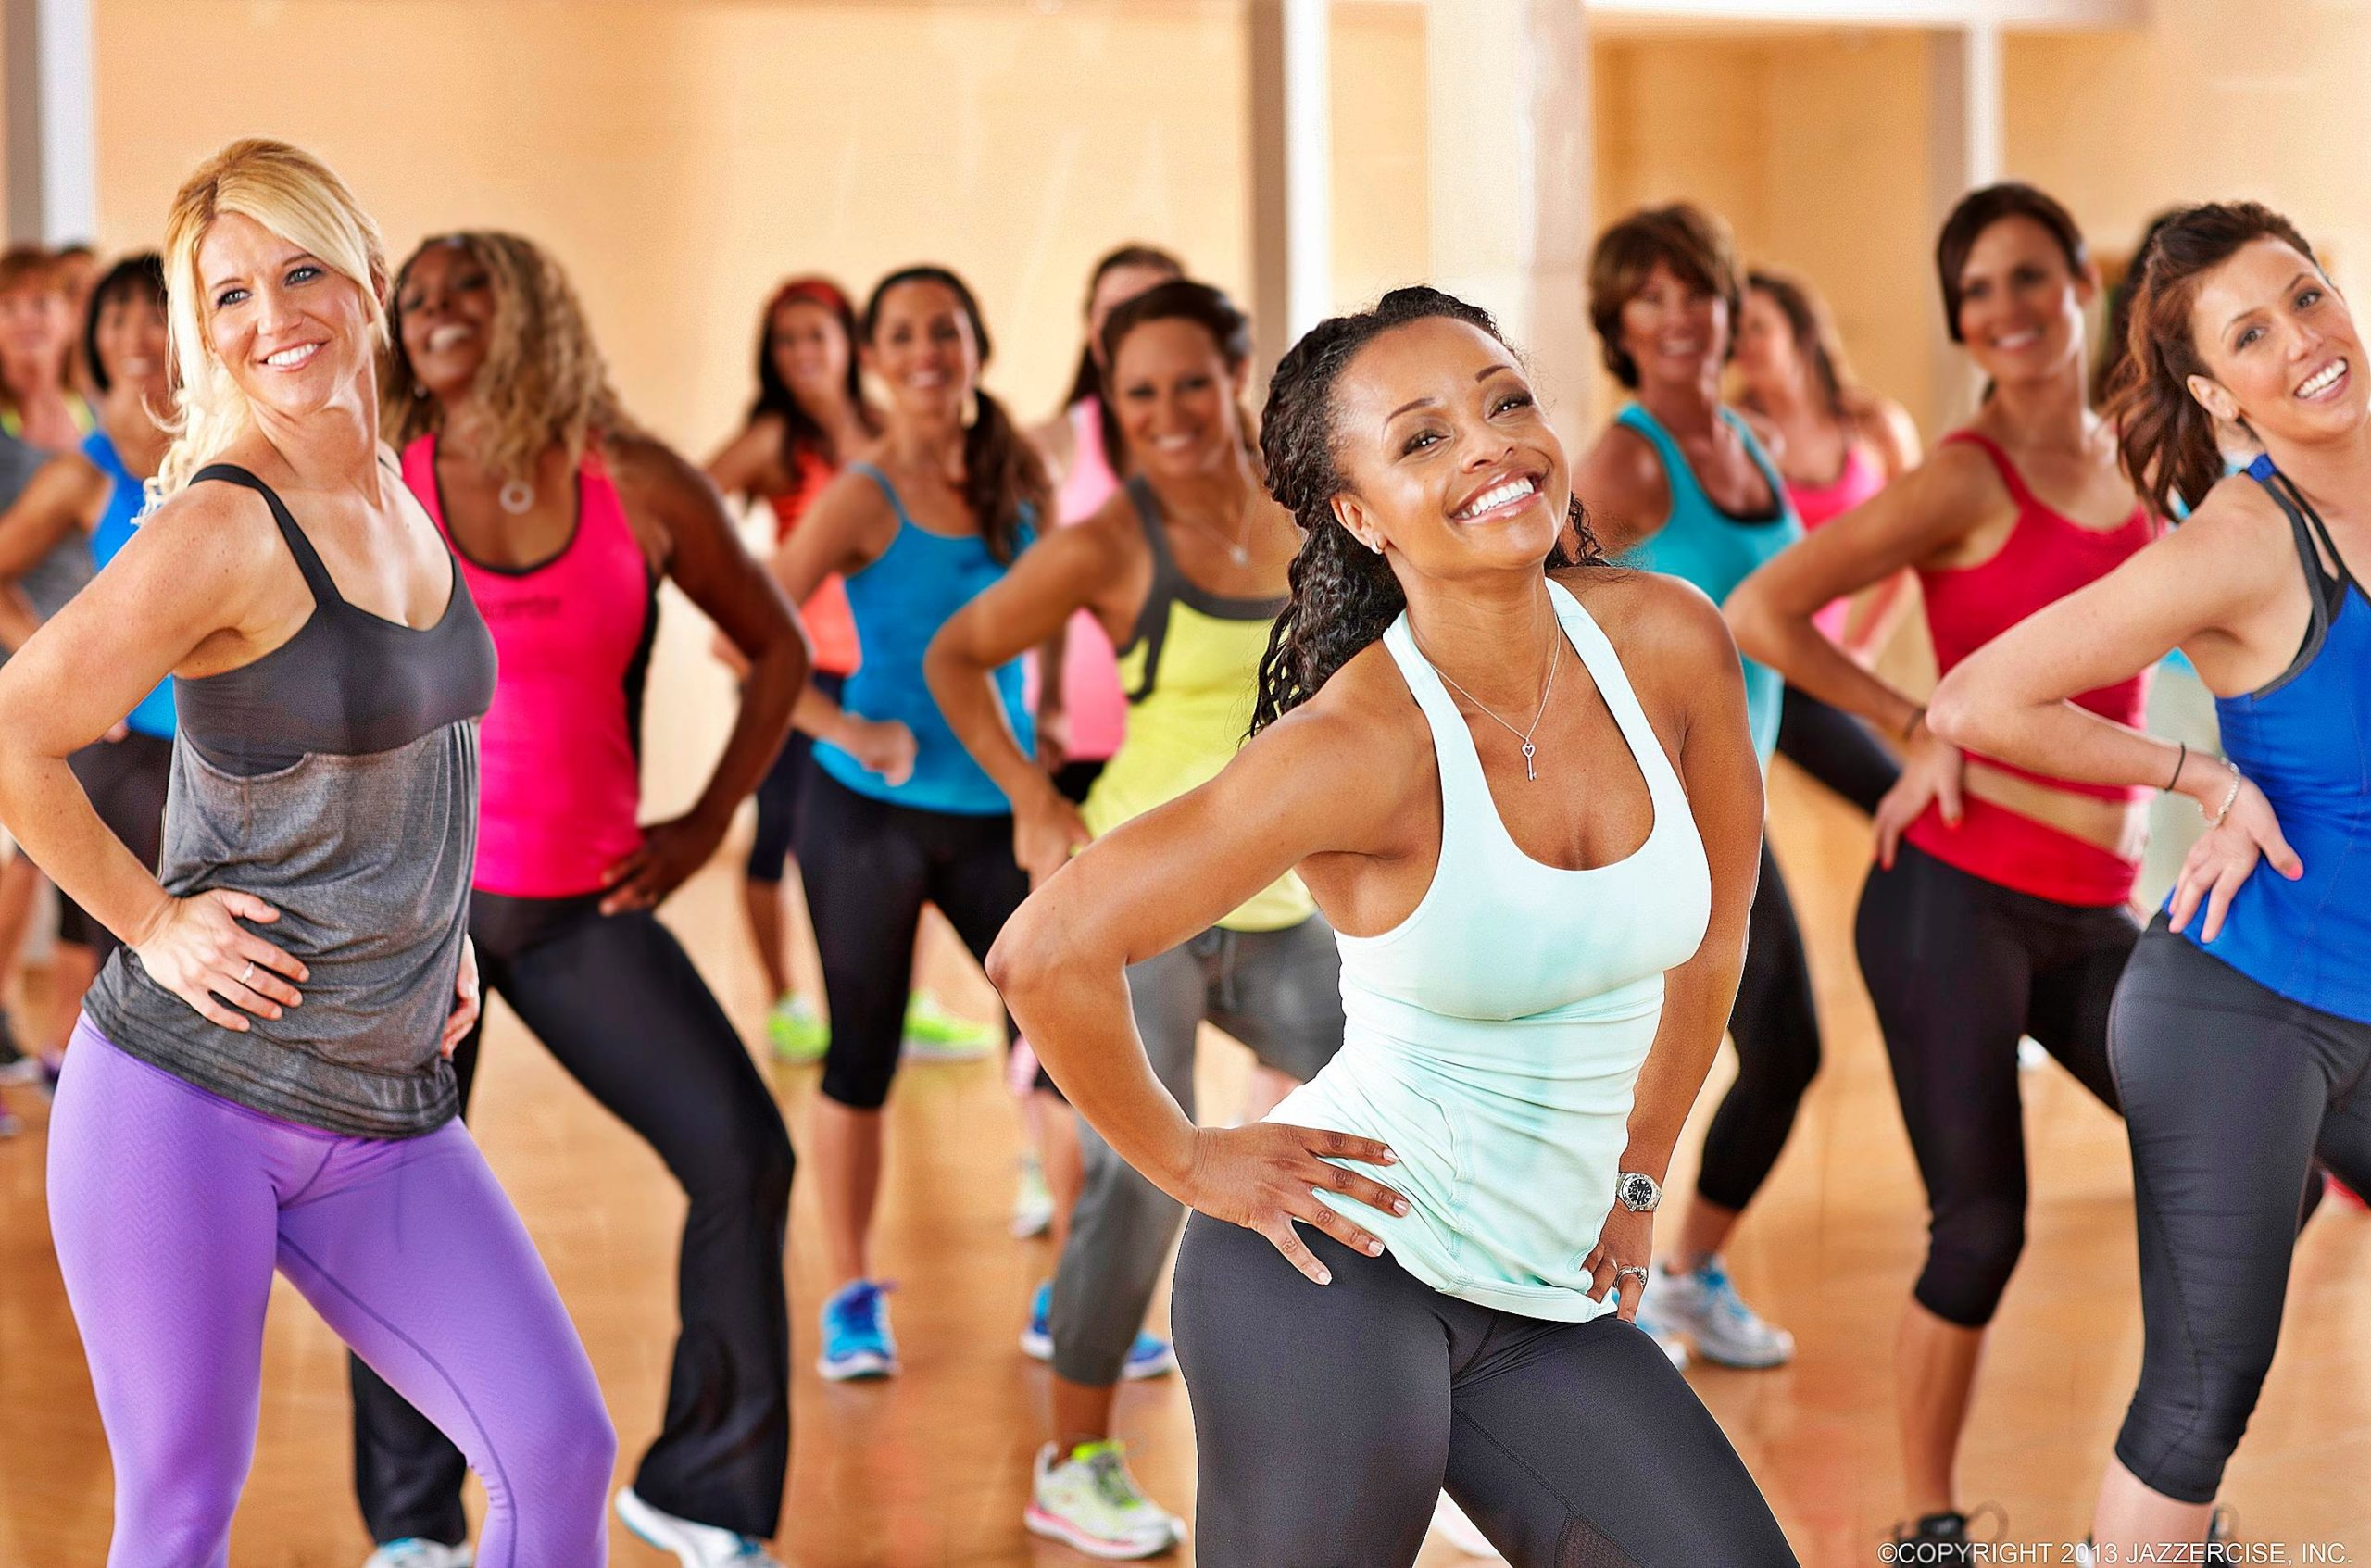 encourages the individual to enjoy the sessions of workout with everyone, make new friends and leave with a happy heart.